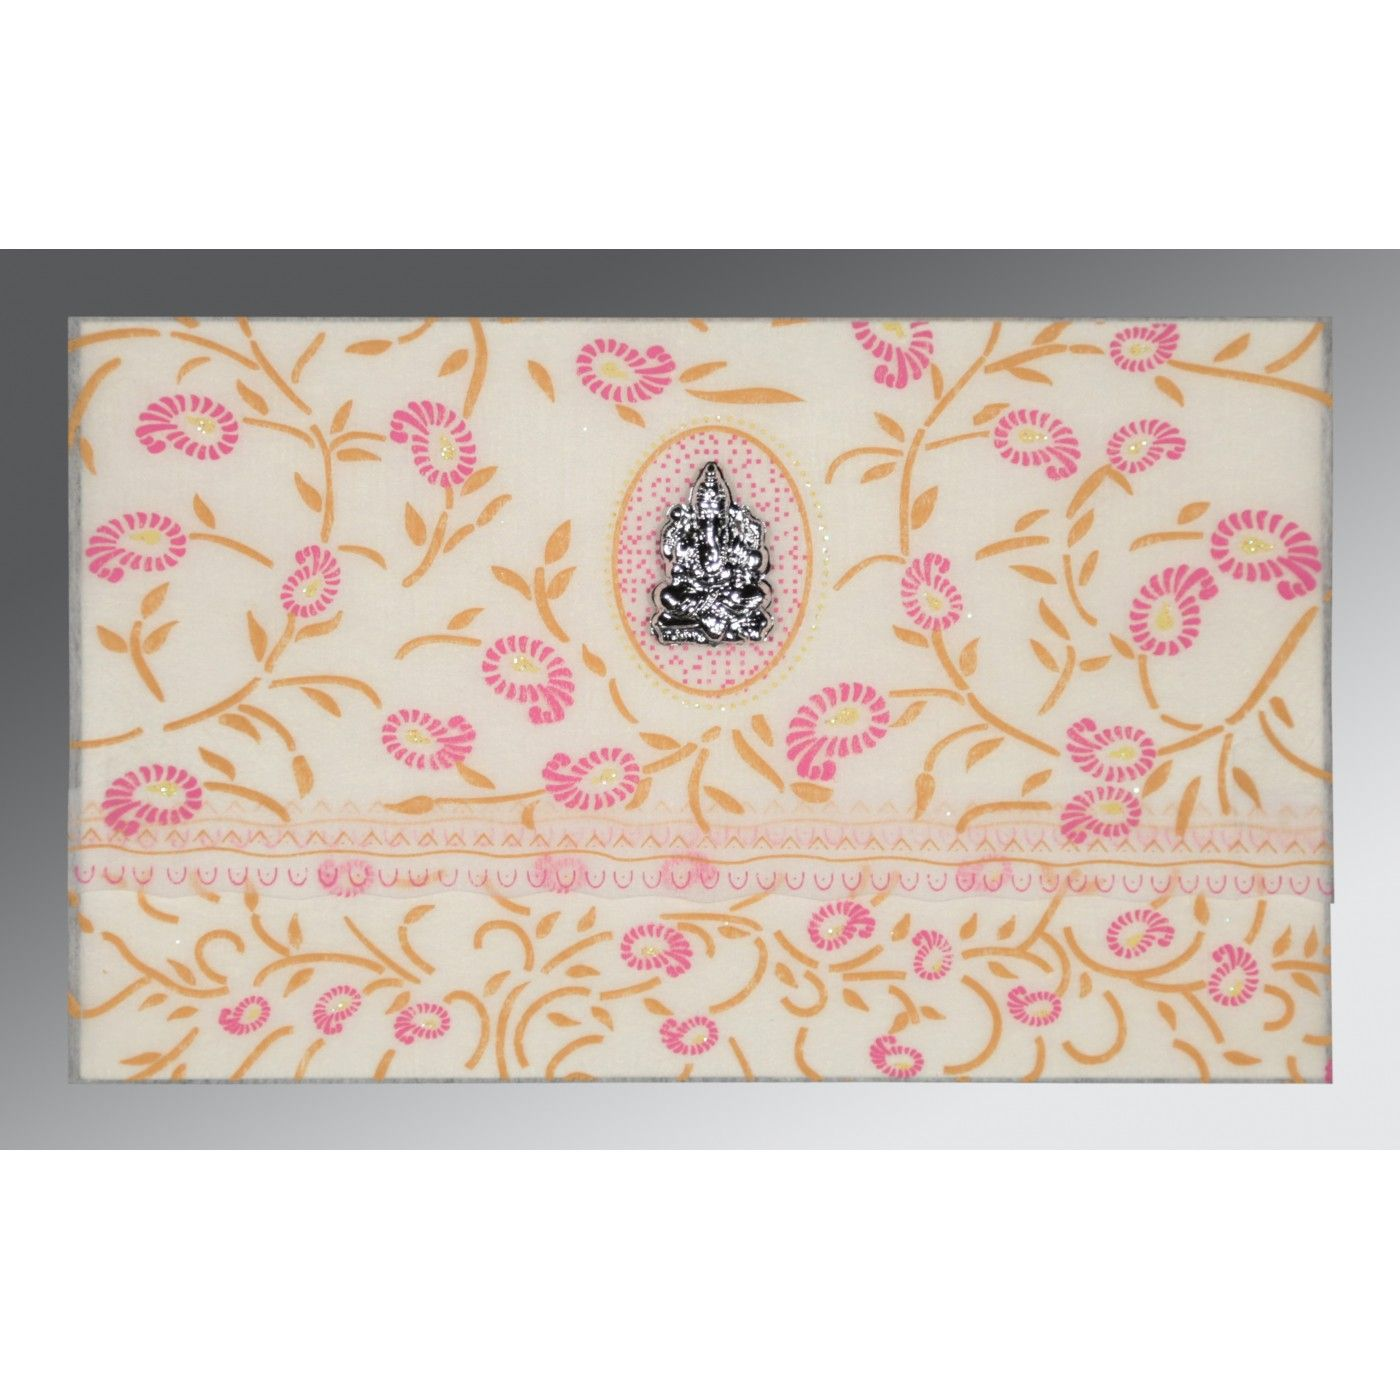 OFF-WHITE WOOLY FLORAL THEMED - GLITTER WEDDING CARD : CW-8206F - IndianWeddingCards